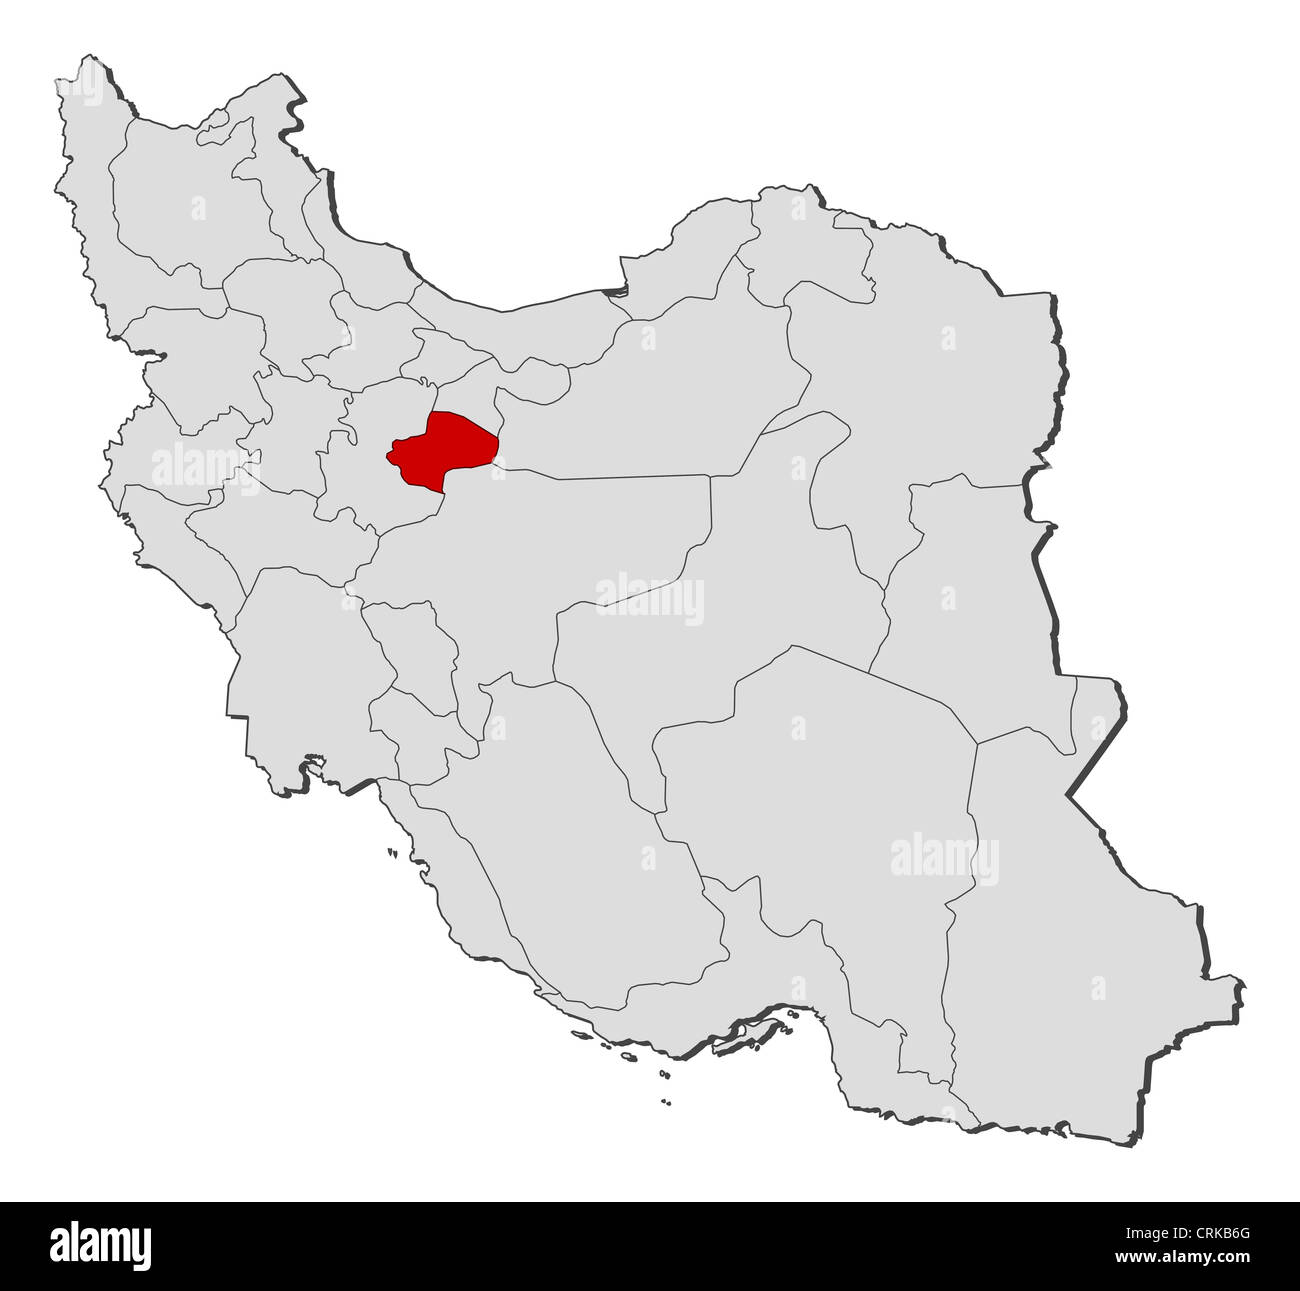 political map of iran with the several provinces where qom is highlighted stock image